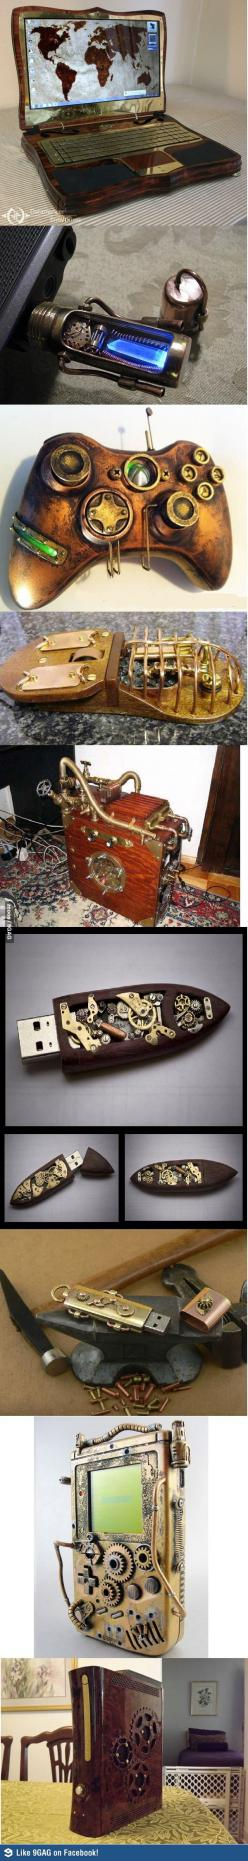 A whole slew of steampunk gadgets. | Follow here http://pinterest.com/cakespinyoface/geekery/ for even more Geekery-- art, tech and more!: Steampunk Electronics, Steampunk Stuff, Steampunk Technology, Steampunk Style, Steampunk Gadgets, Steam Punk, Steamp